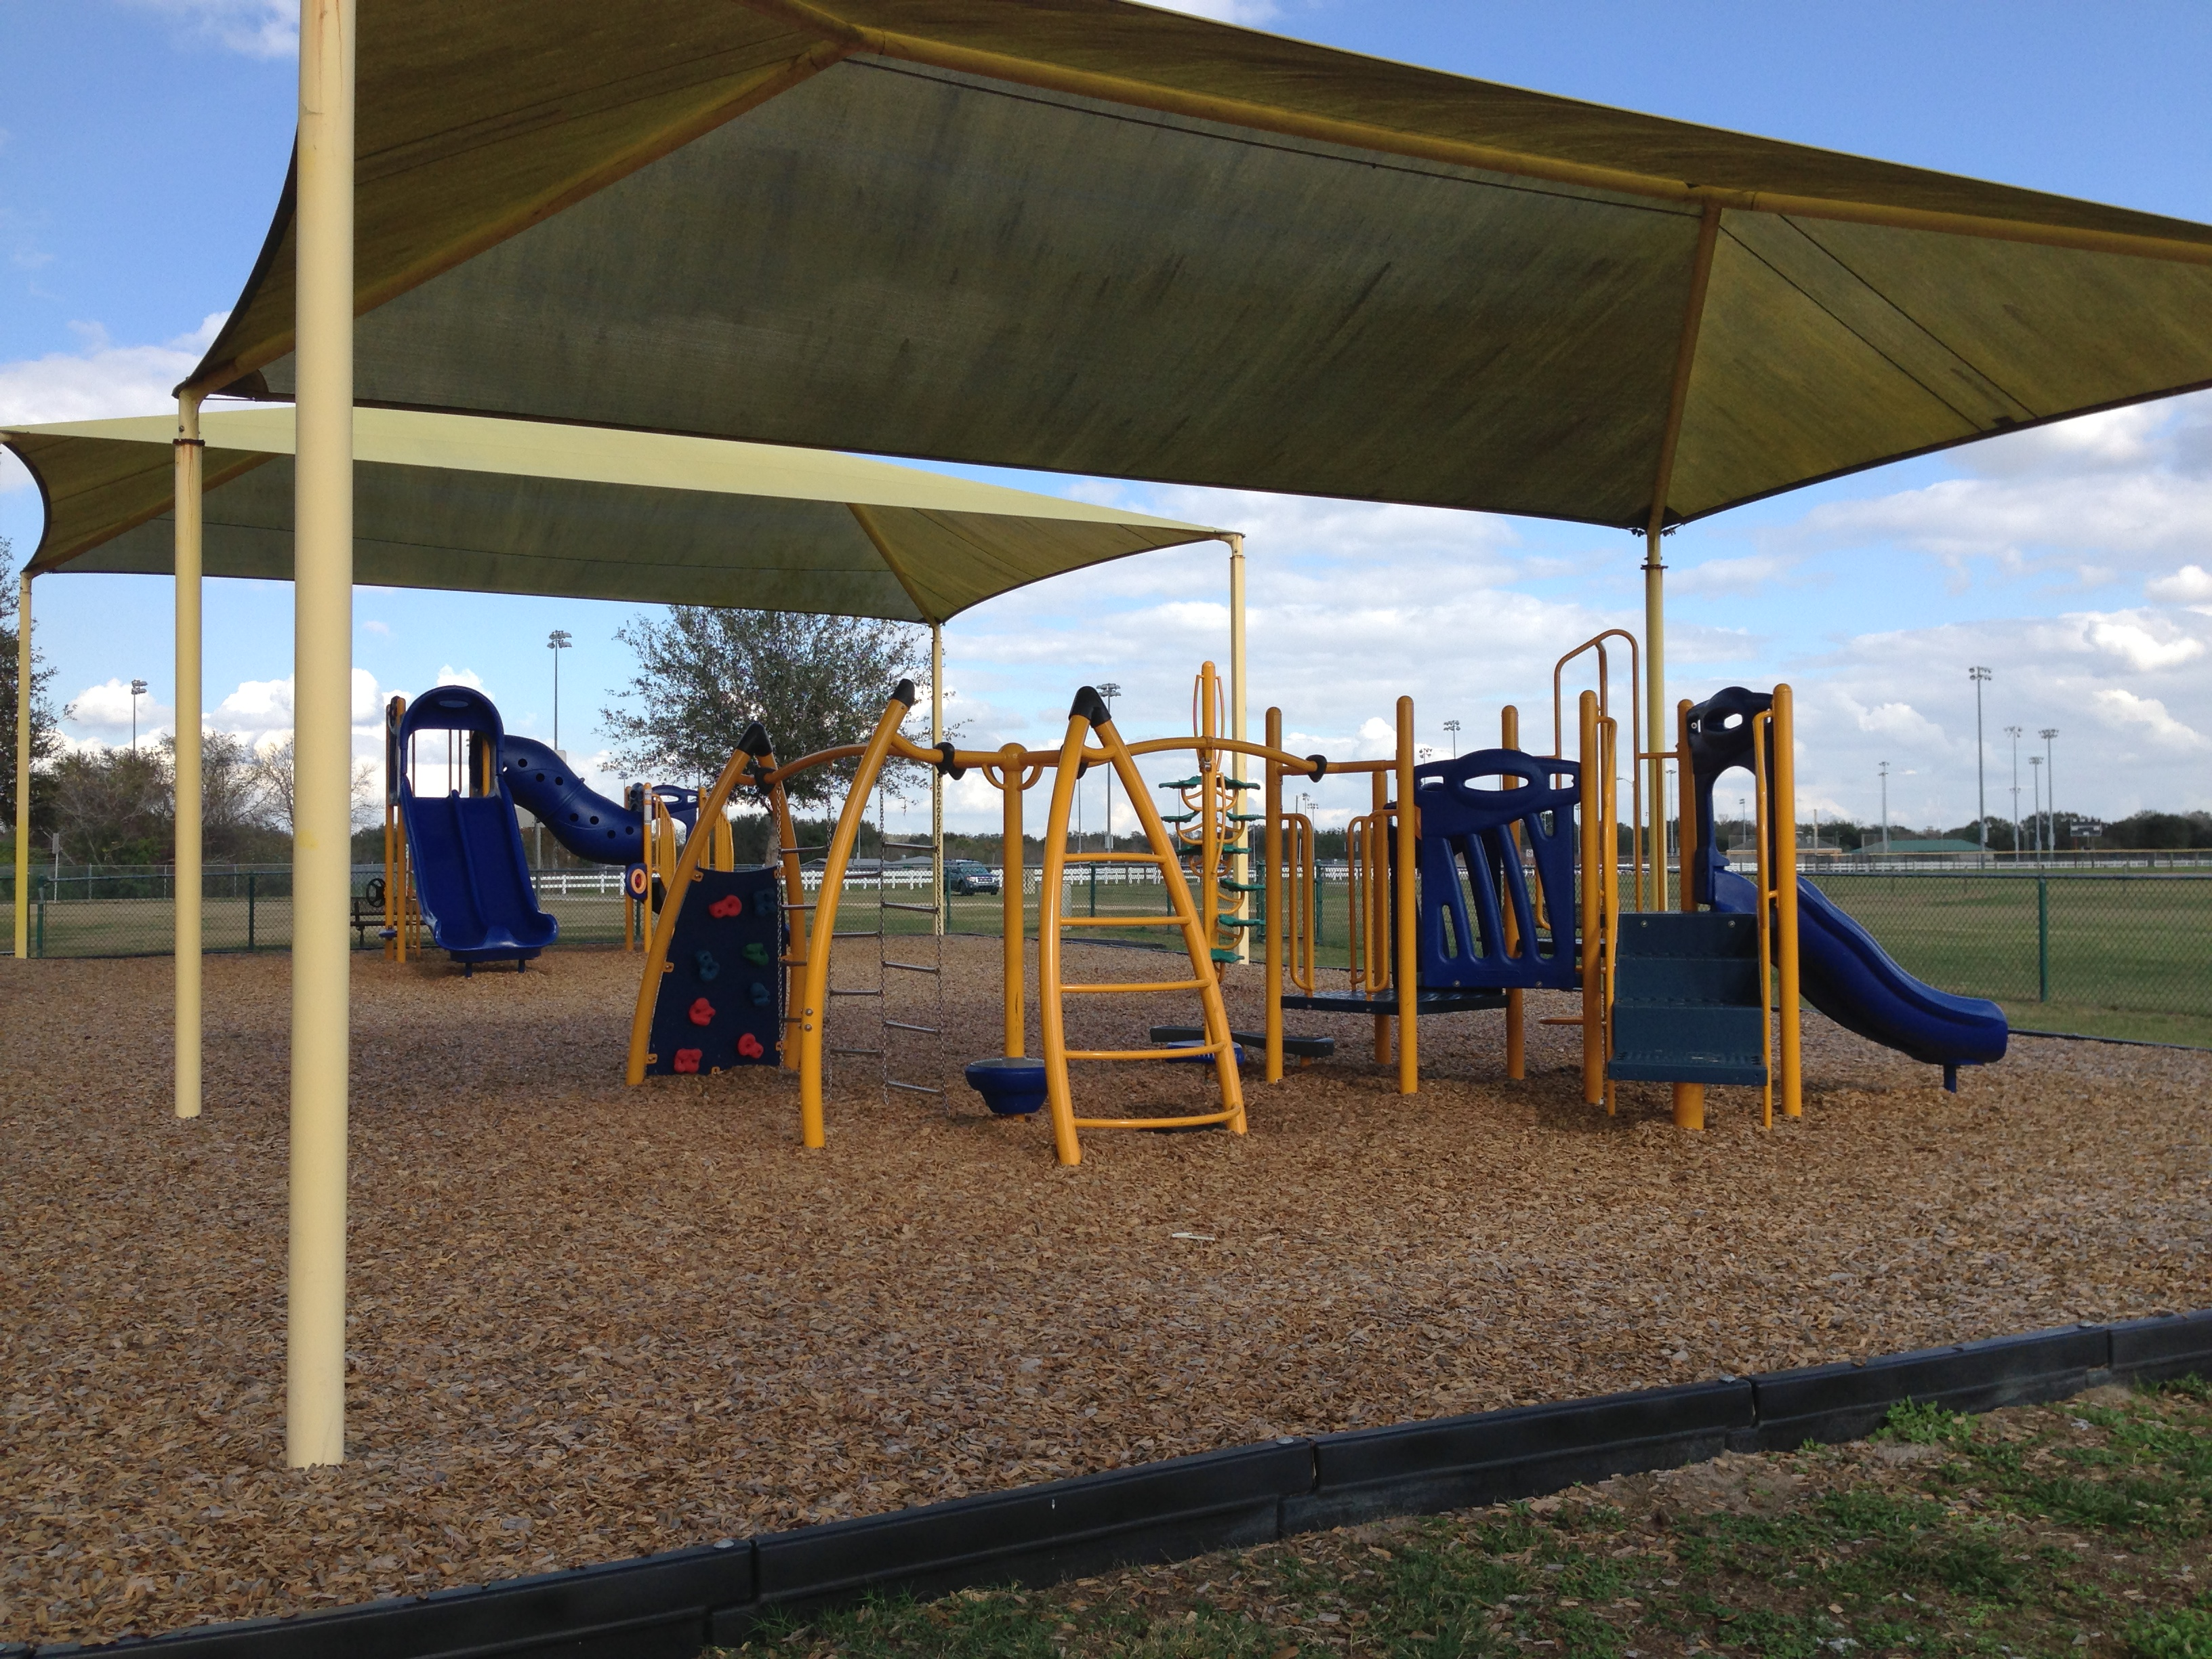 A playground area at Loyce E. Harpe Park